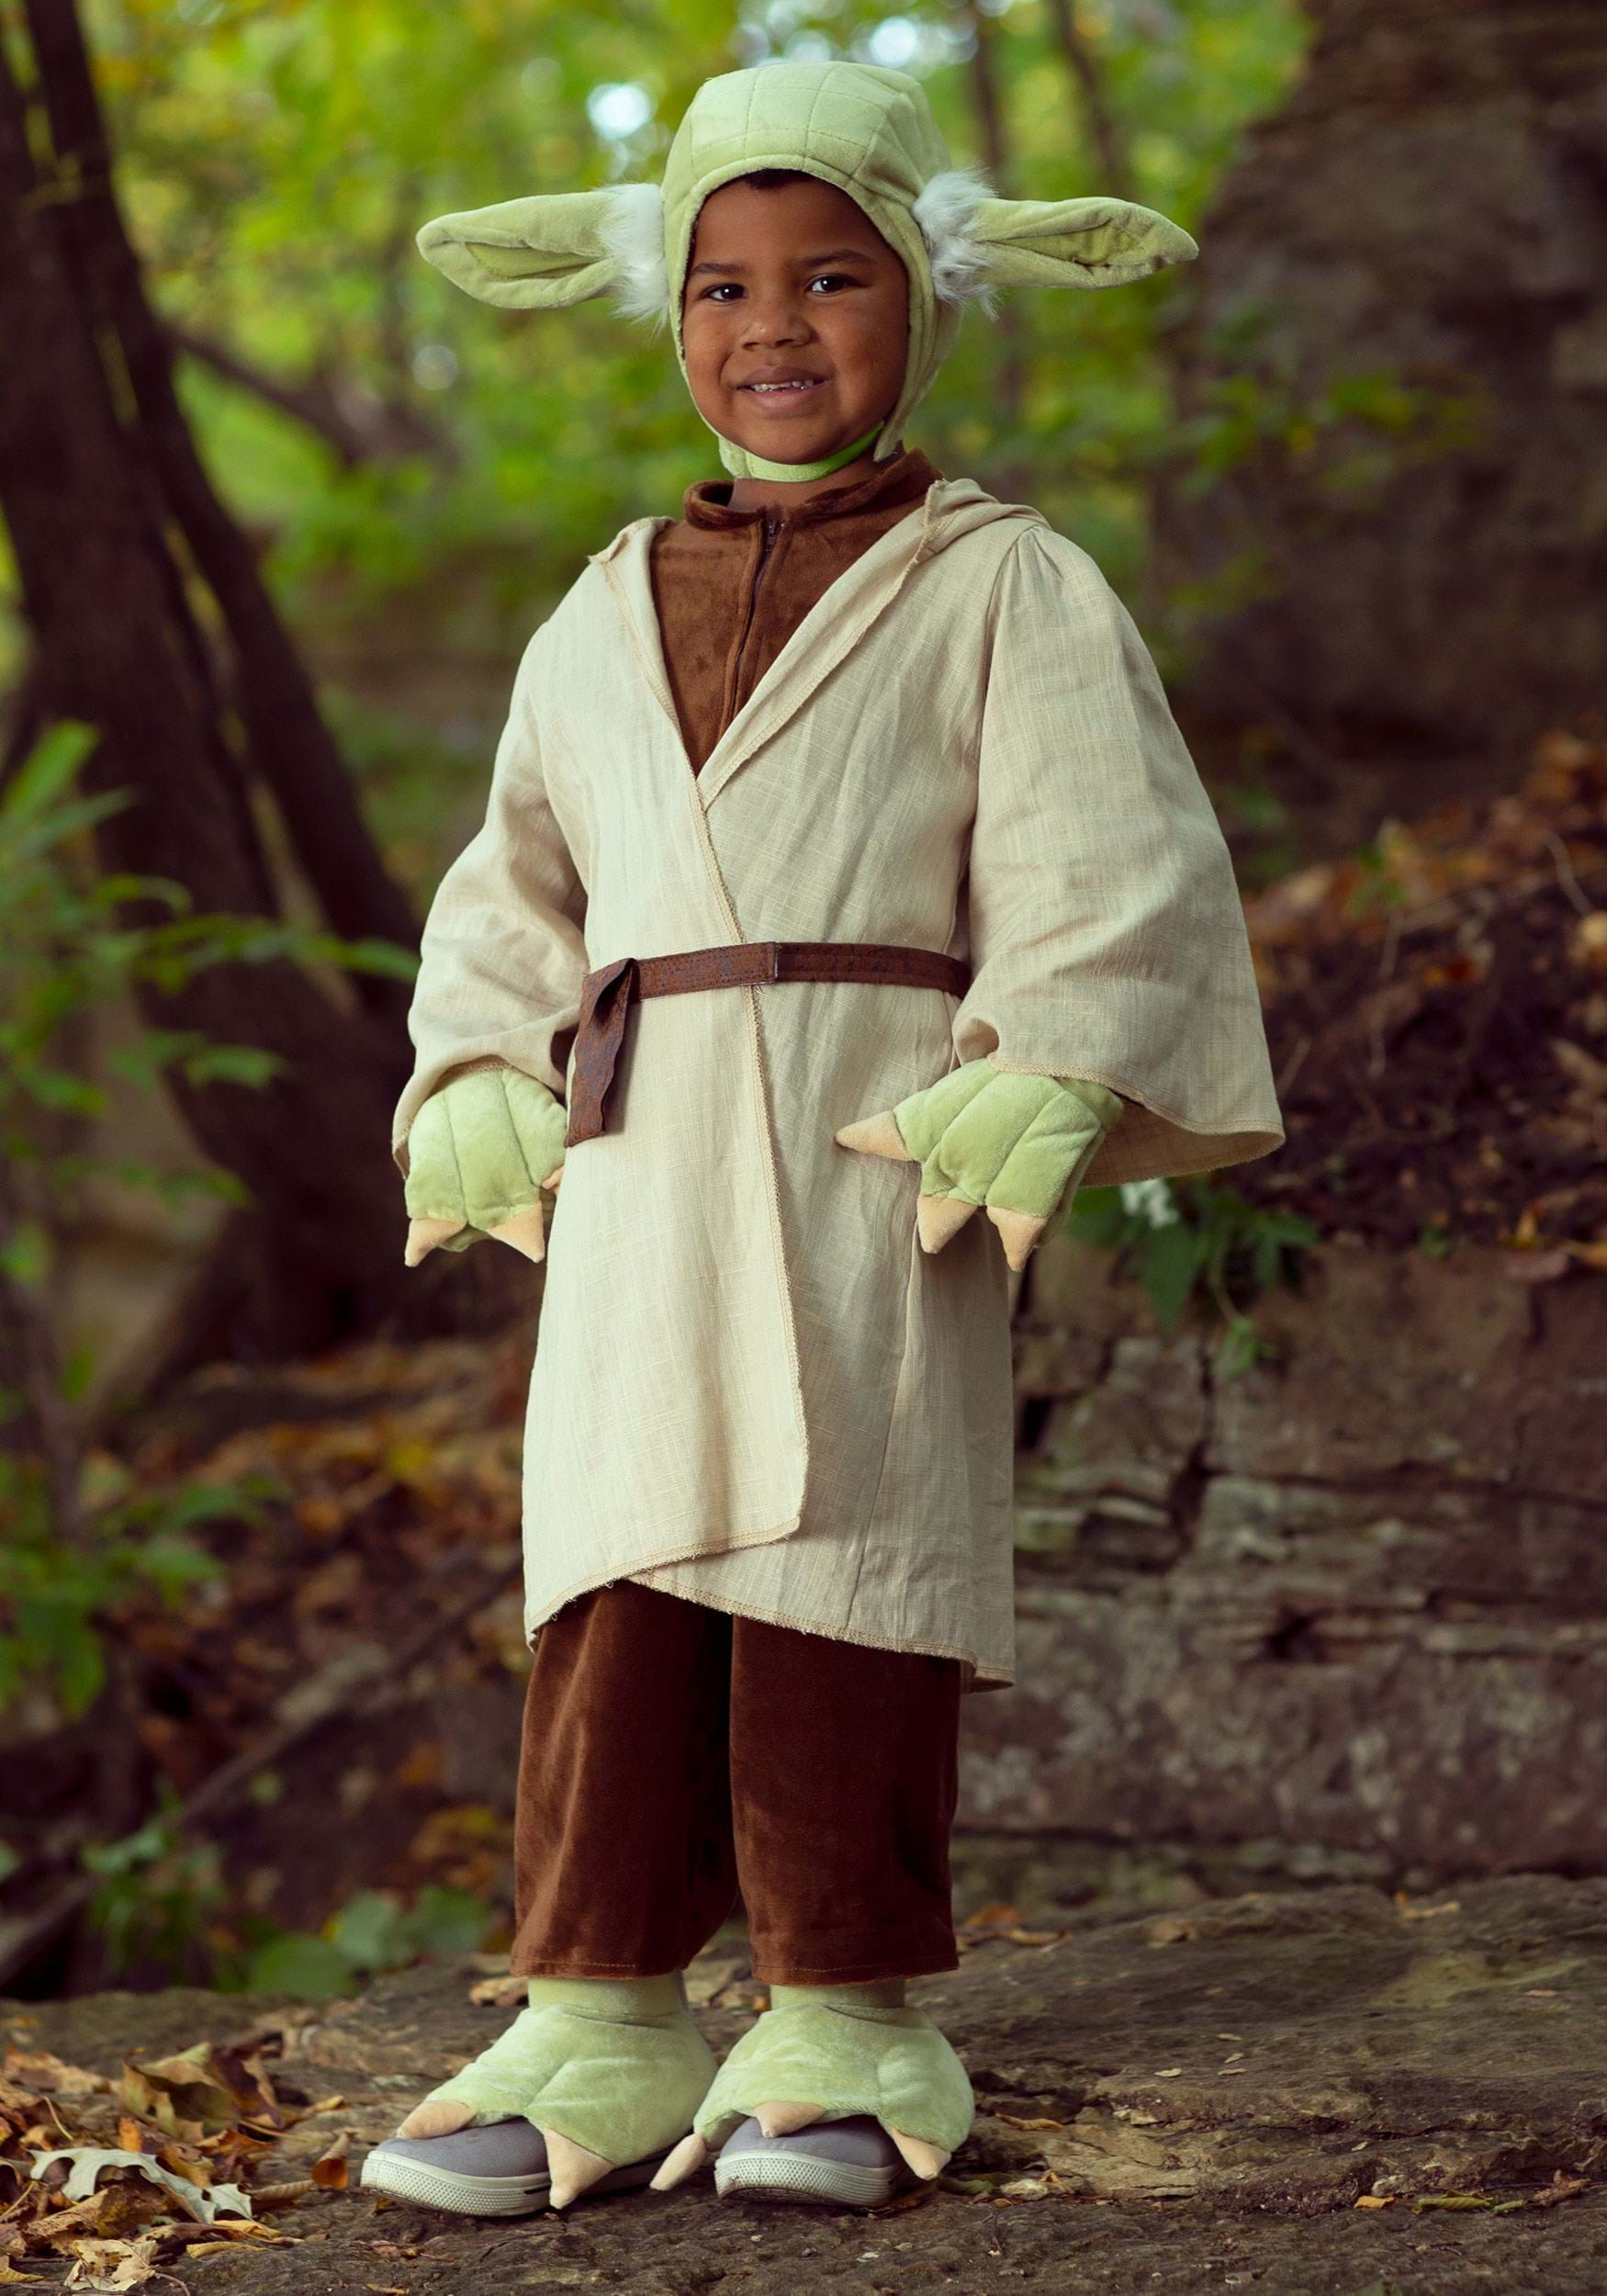 Star wars costumes halloweencostumes star wars toddler yoda costume solutioingenieria Gallery